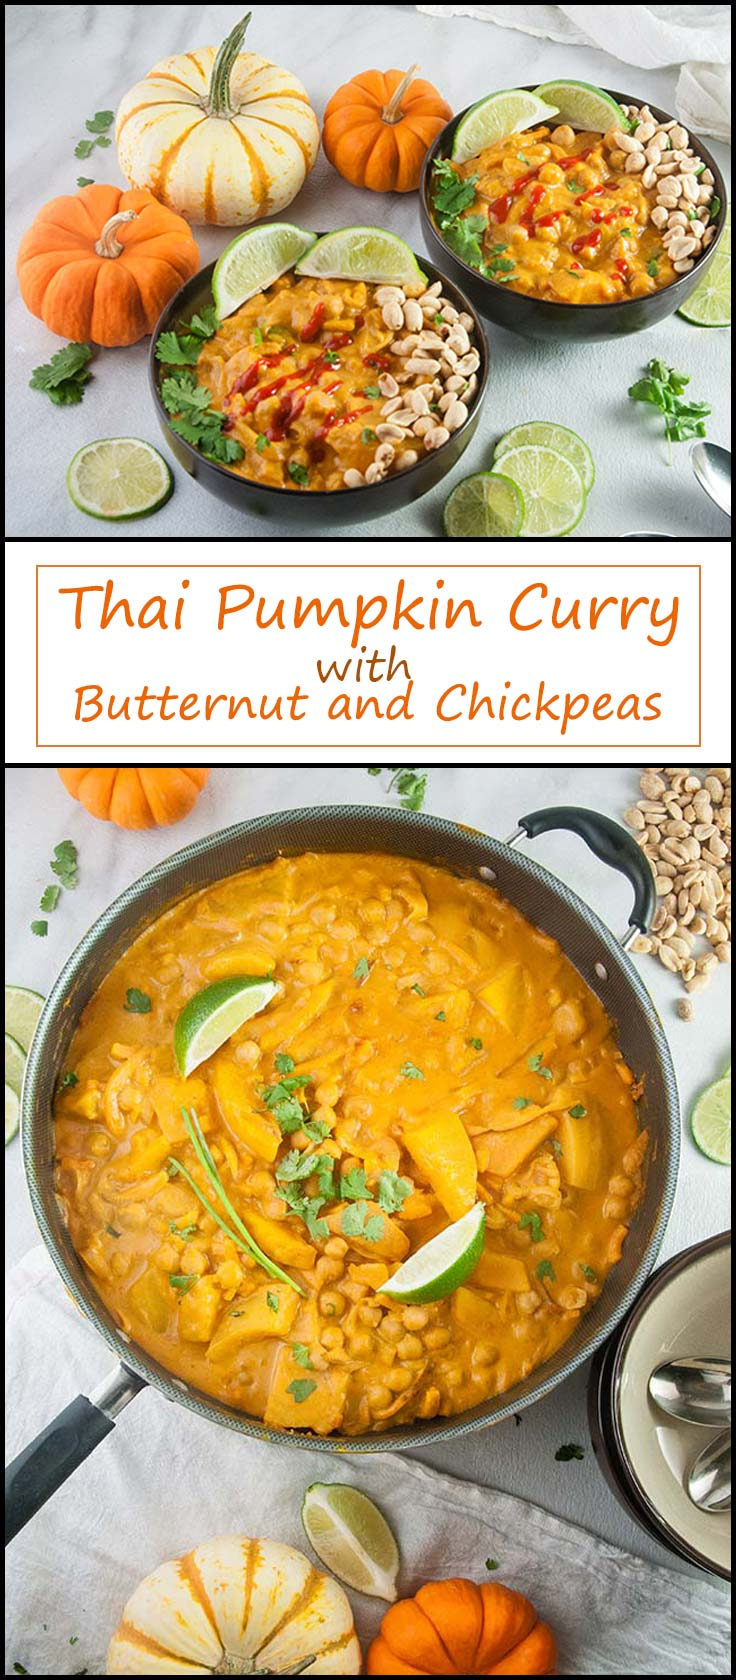 Easy Thai Pumpkin Curry with Butternut Squash and Chickpeas from www.seasonedsprinkles.com